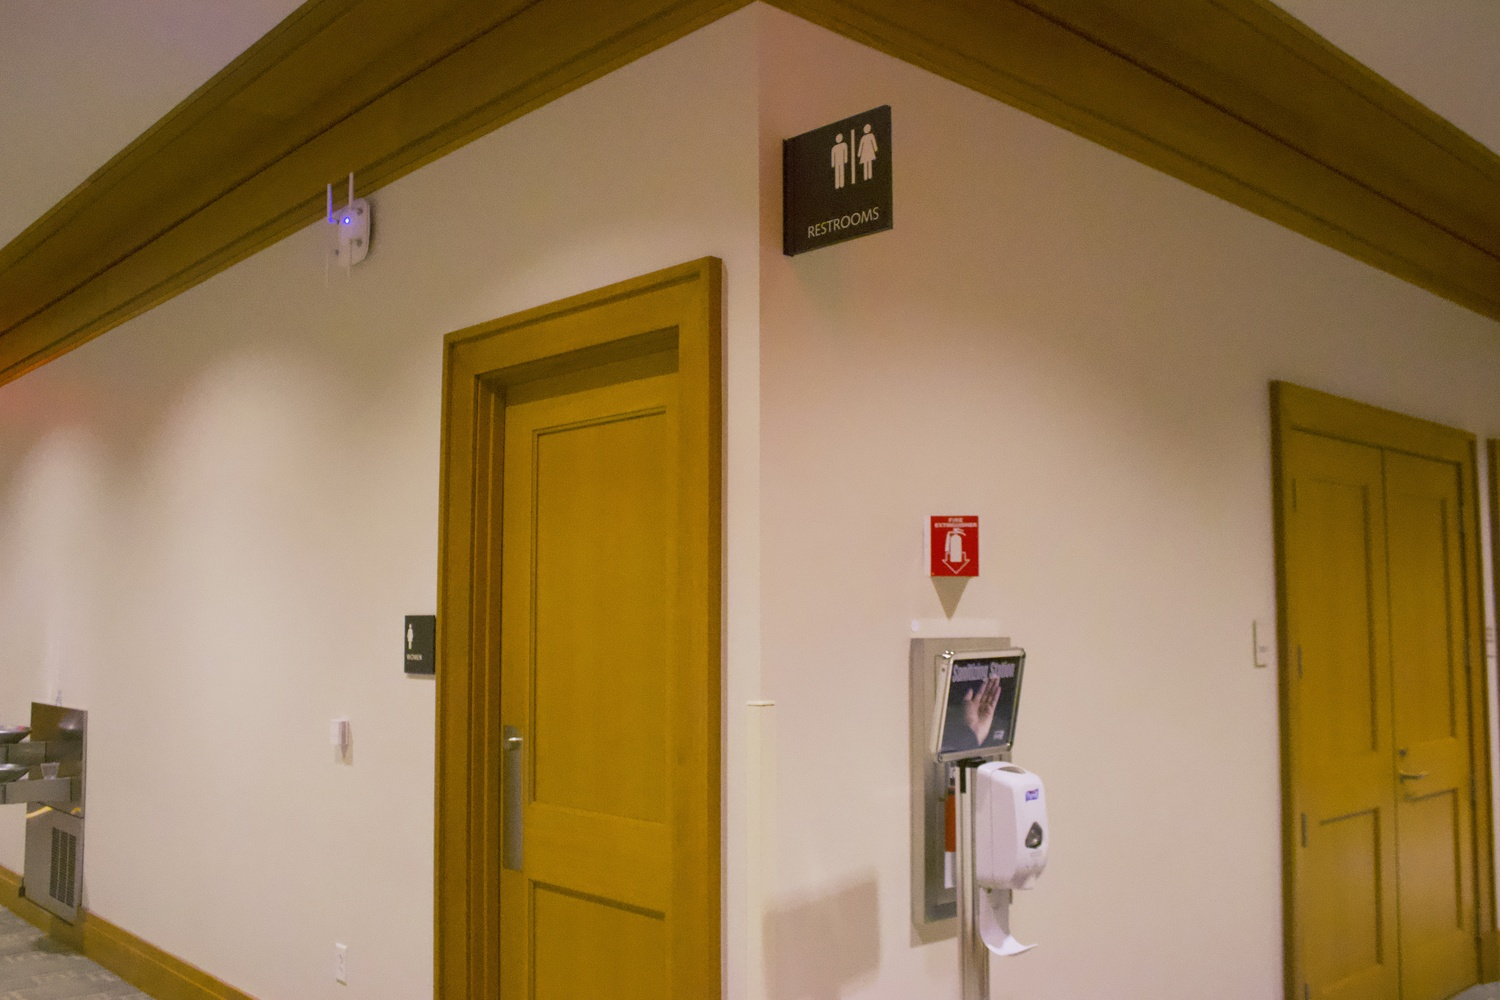 Hls Makes Gender Neutral Bathroom More Accessible After Concern News The Harvard Crimson